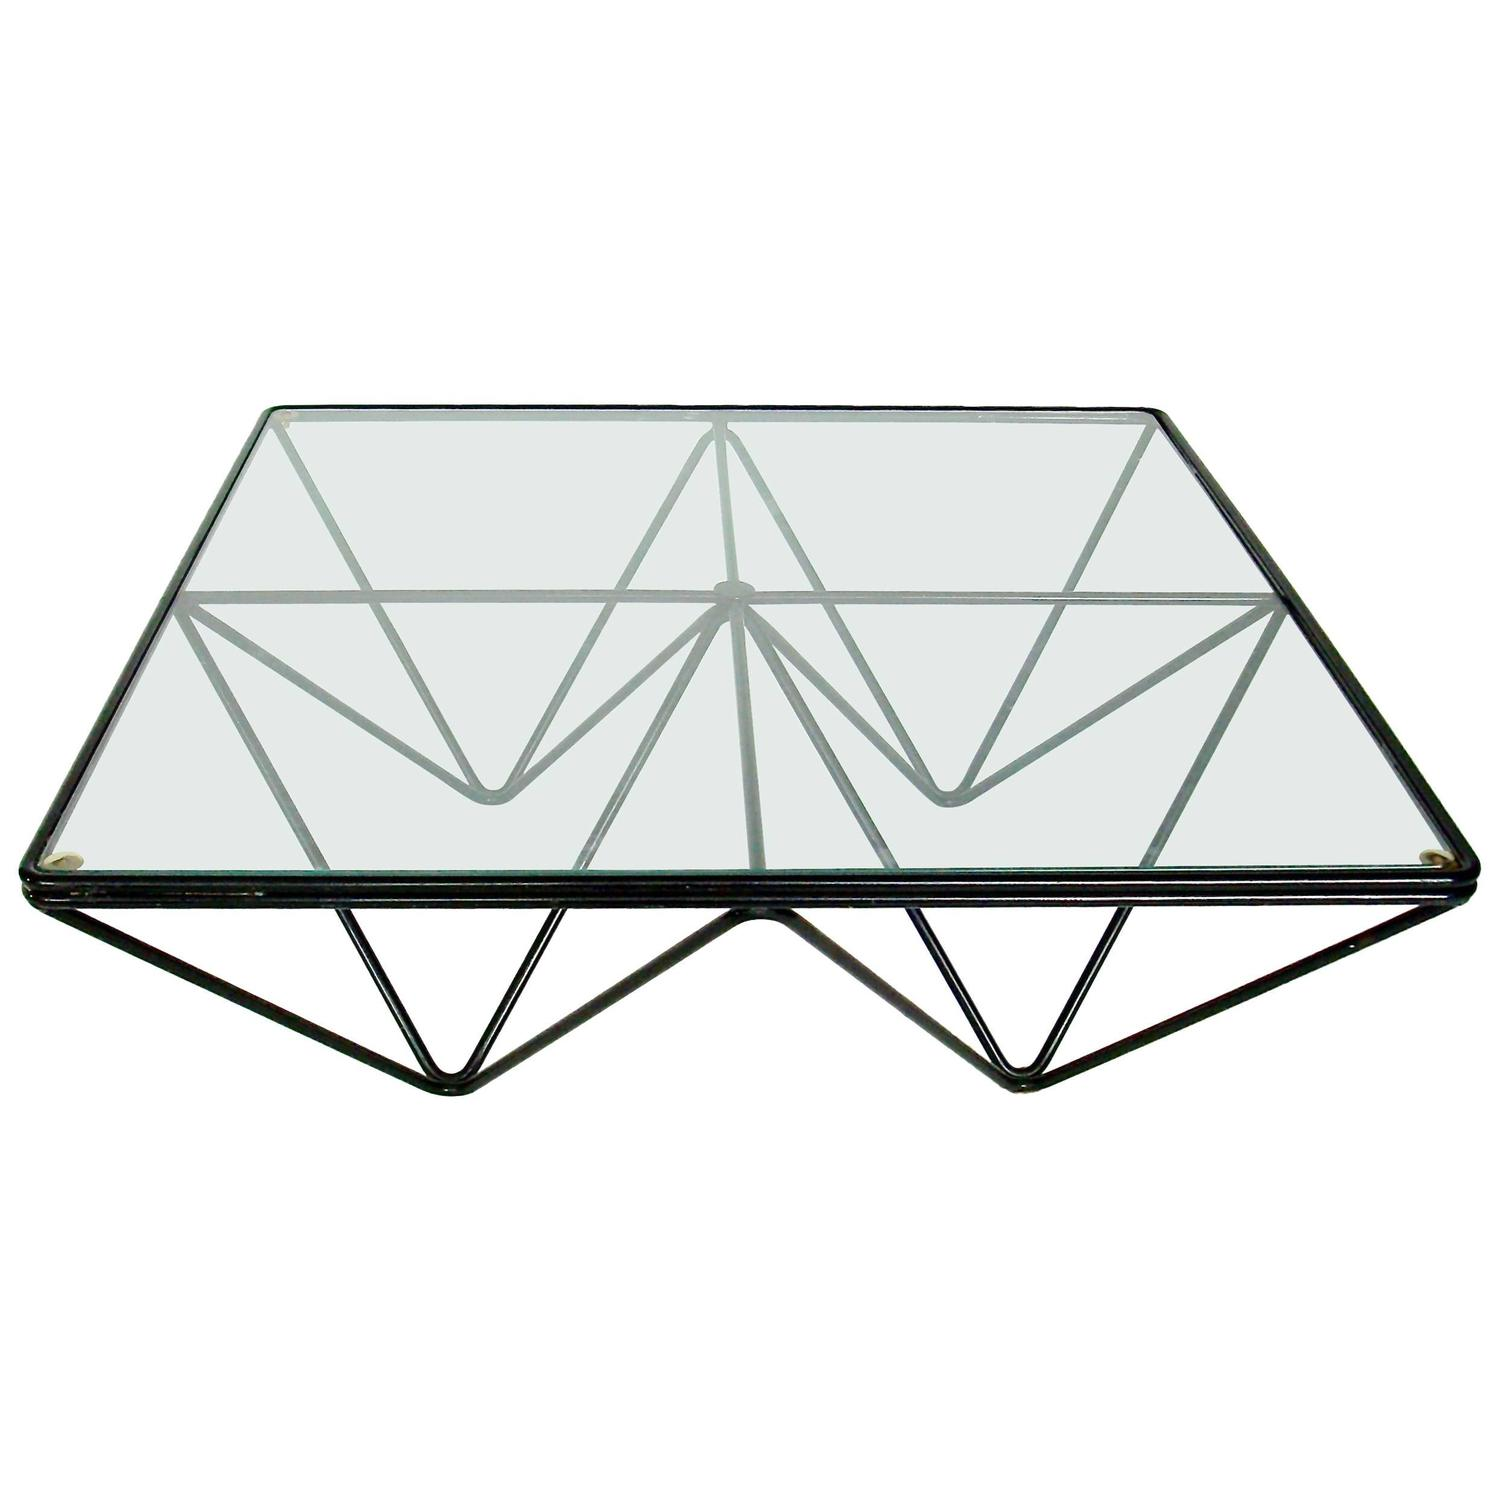 Italian Square Black Alanda Coffee Table by Paolo Piva for B&B